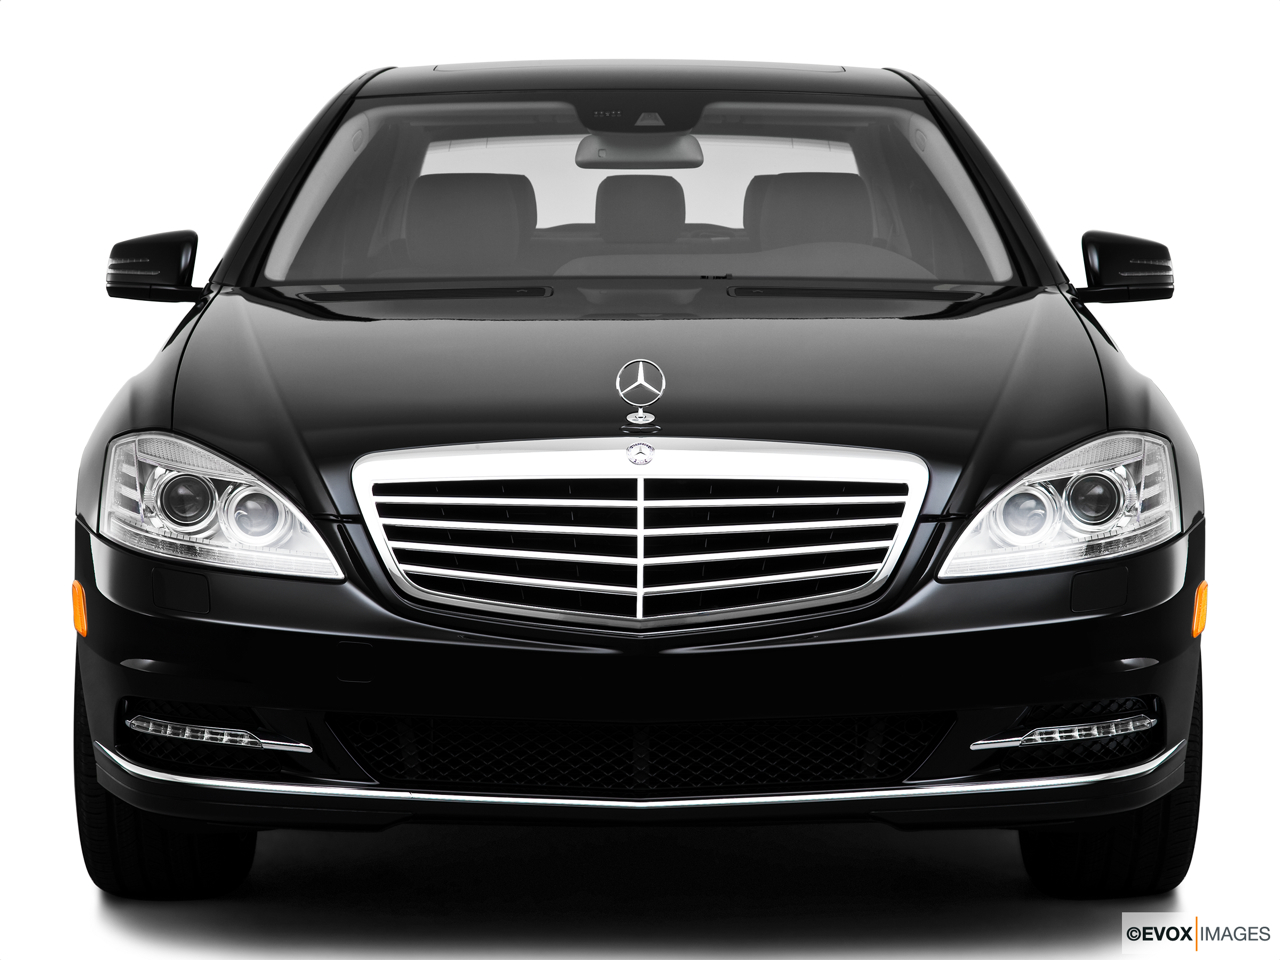 2010 Mercedes-Benz S-Class Hybrid S400 Low/wide front.